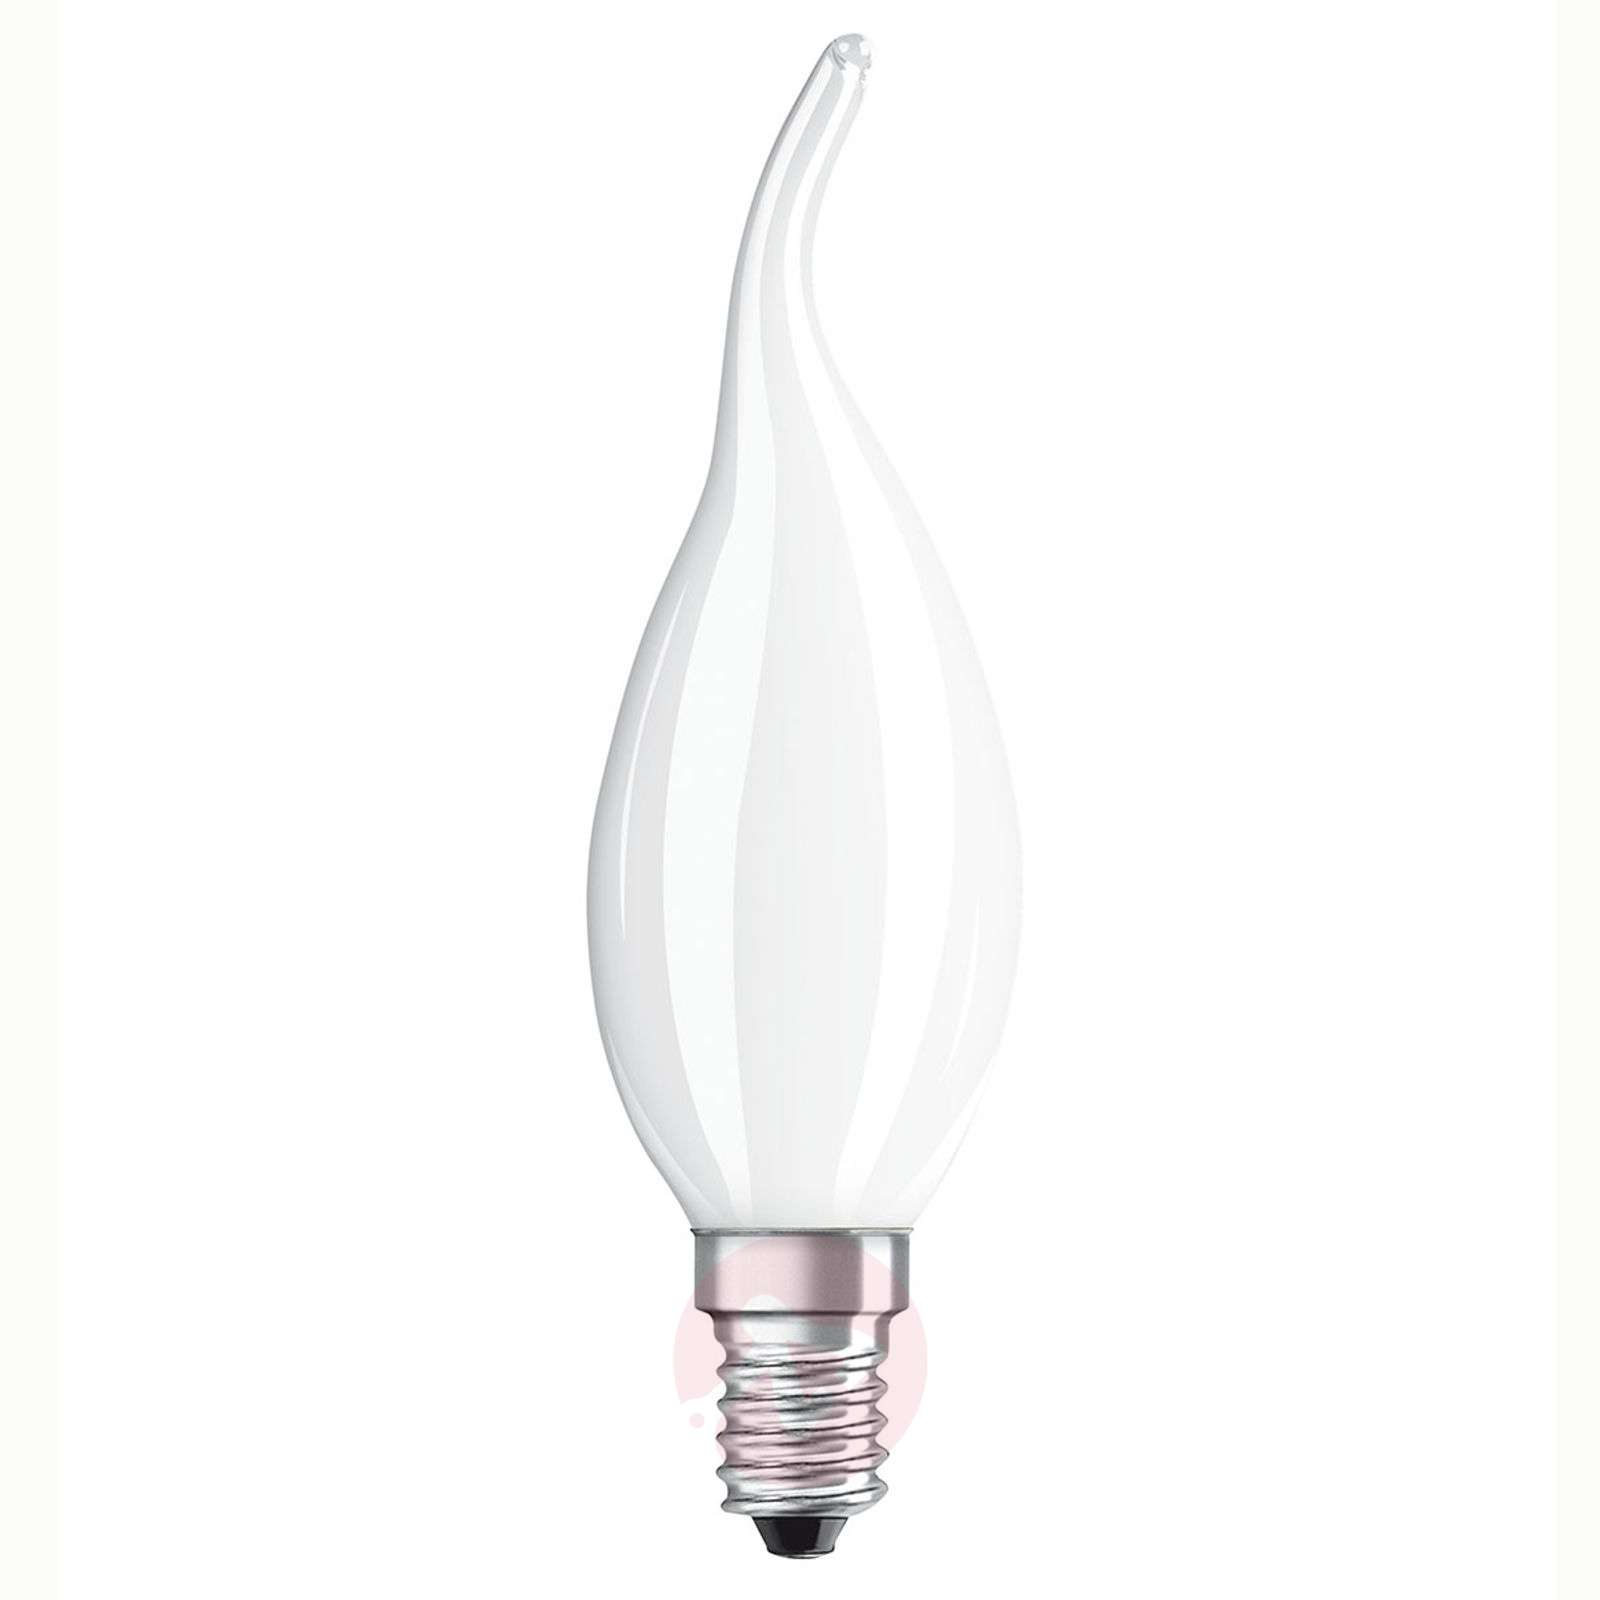 Ampoule flamme LED E14 5W, blanc chaud, dimmable-7262018-04